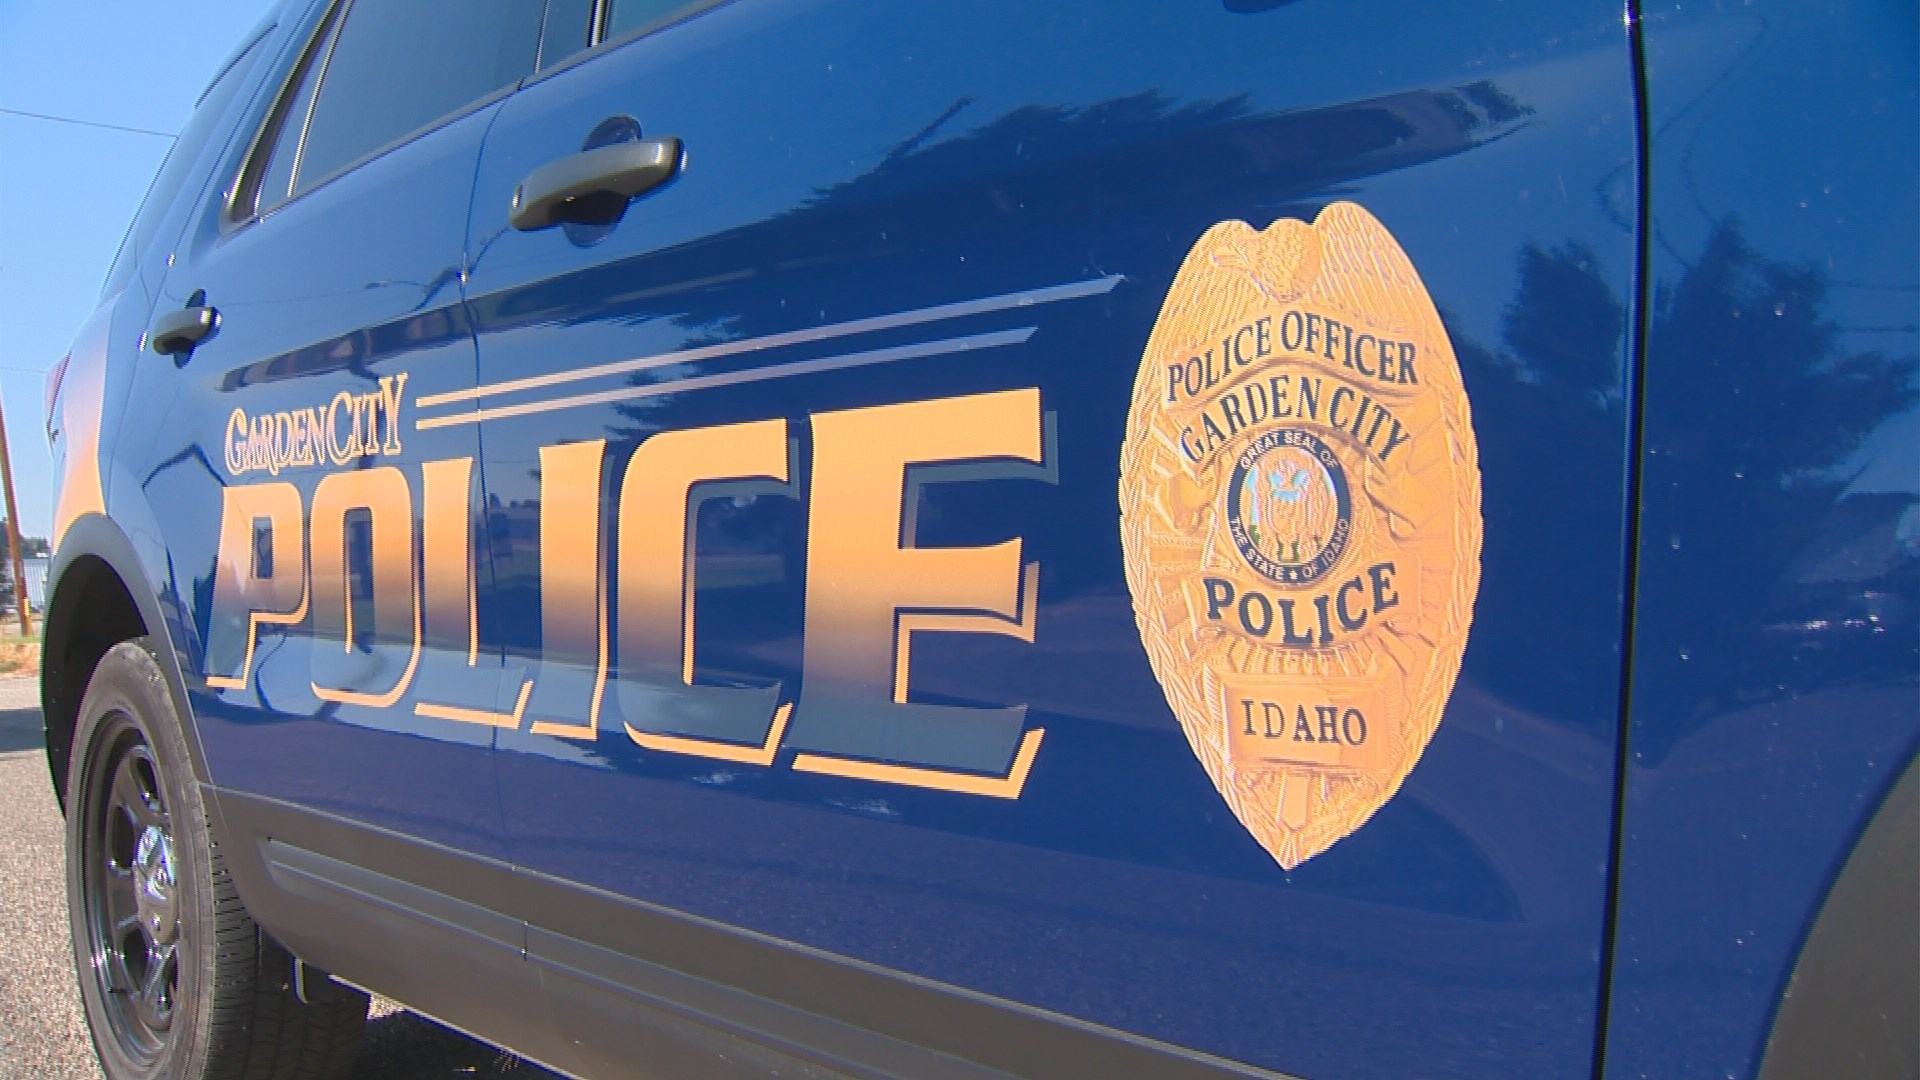 14 Year Old Charged With Driving Stolen Car Assaulting Officers Ktvb Com